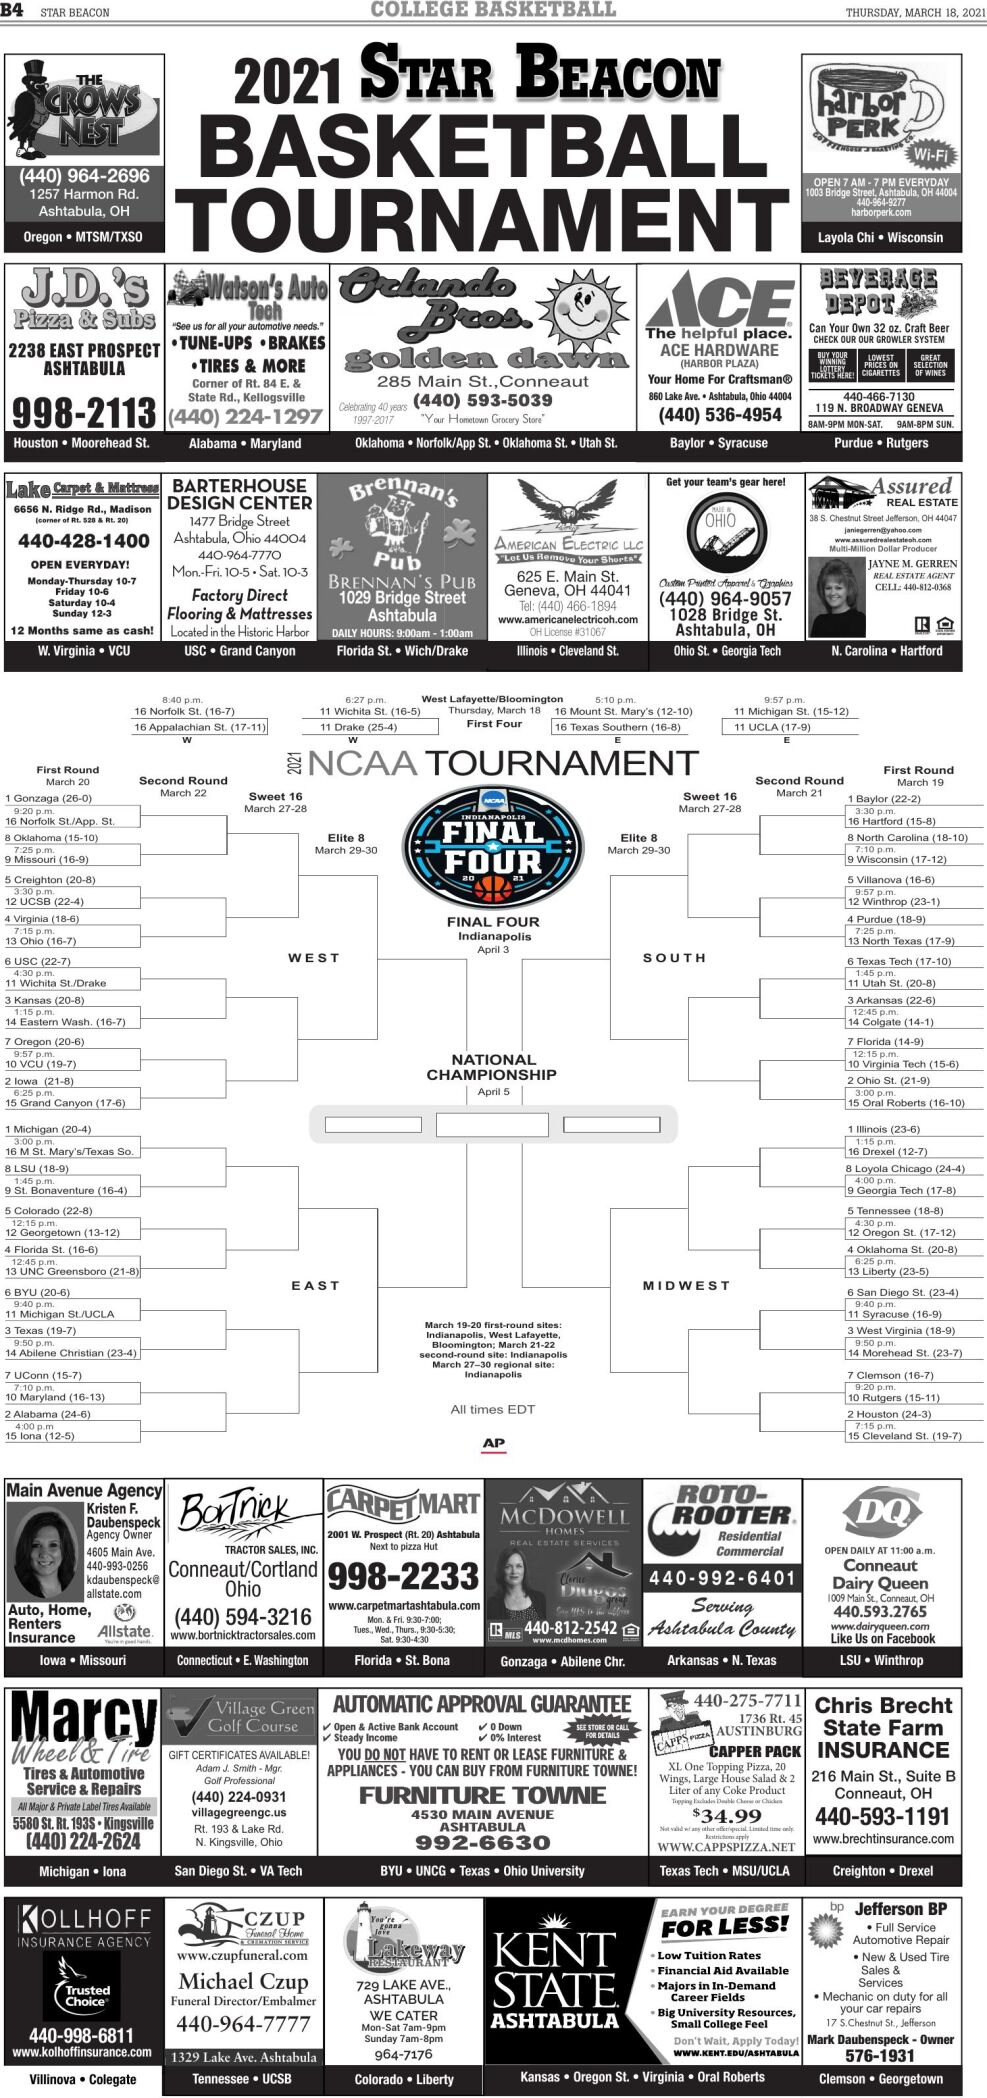 MARCH MADNESS - Marc 18, 2021